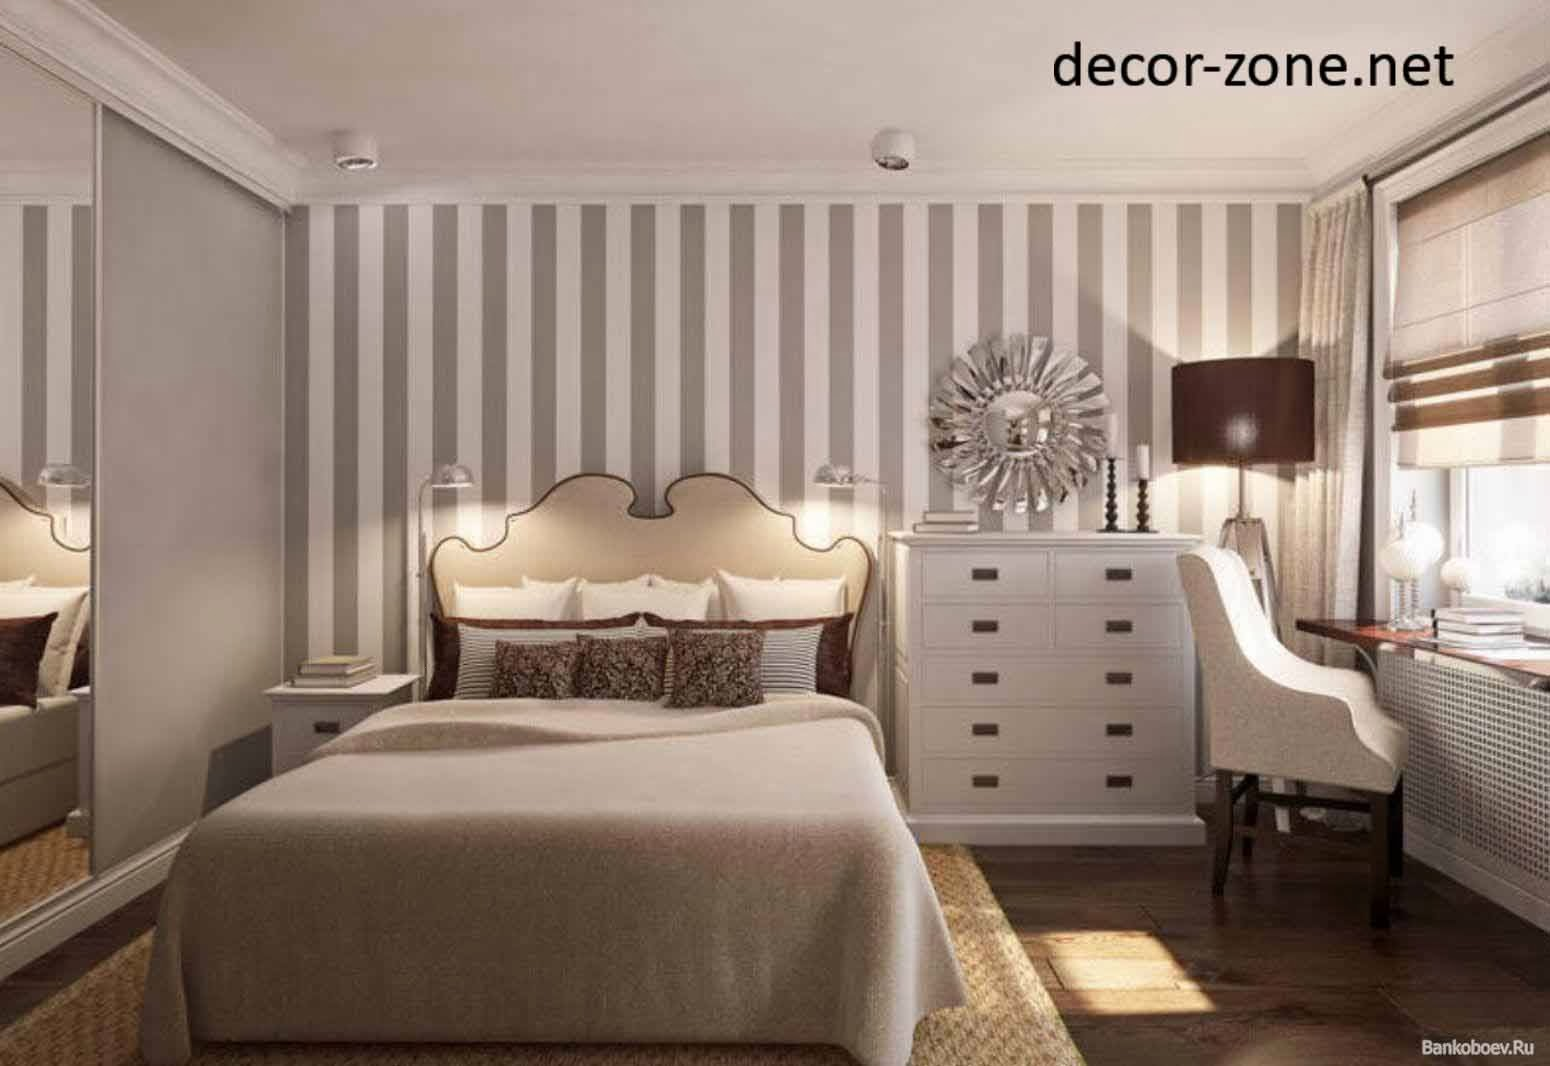 Free download Master bedroom wallpaper ideas [1550x1066] for ...